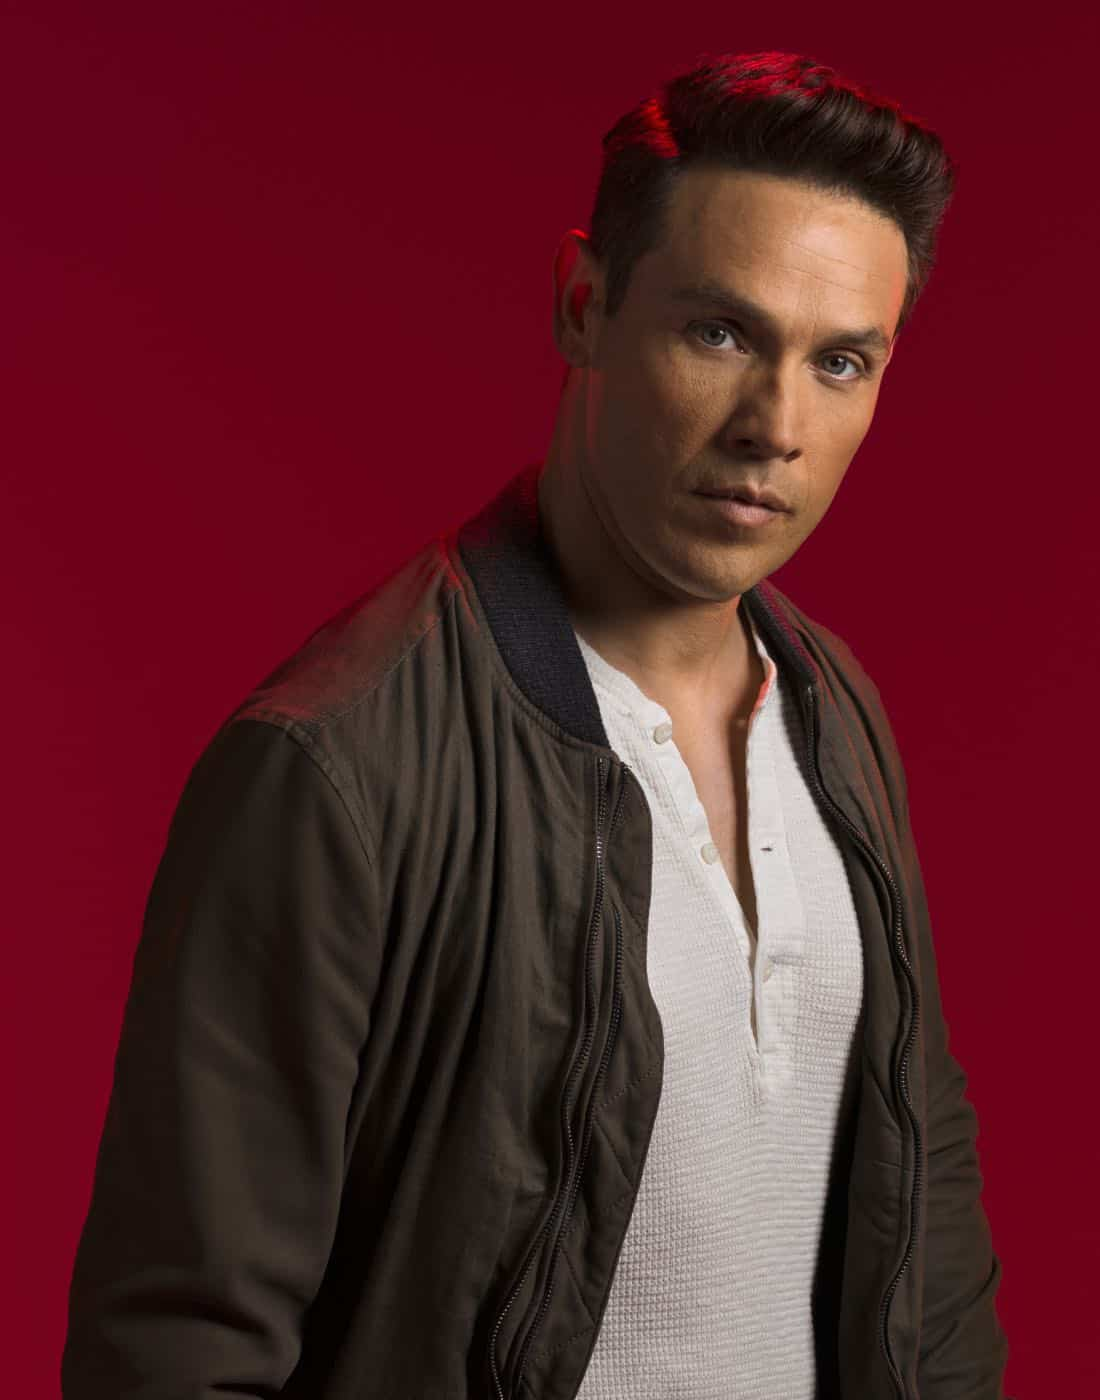 LUCIFER: Season 3 of LUCIFER premieres Monday, Oct. 2 on FOX. Kevin Alejandro. ©2017 Fox Broadcasting Co. CR: Jason Bell/FOX